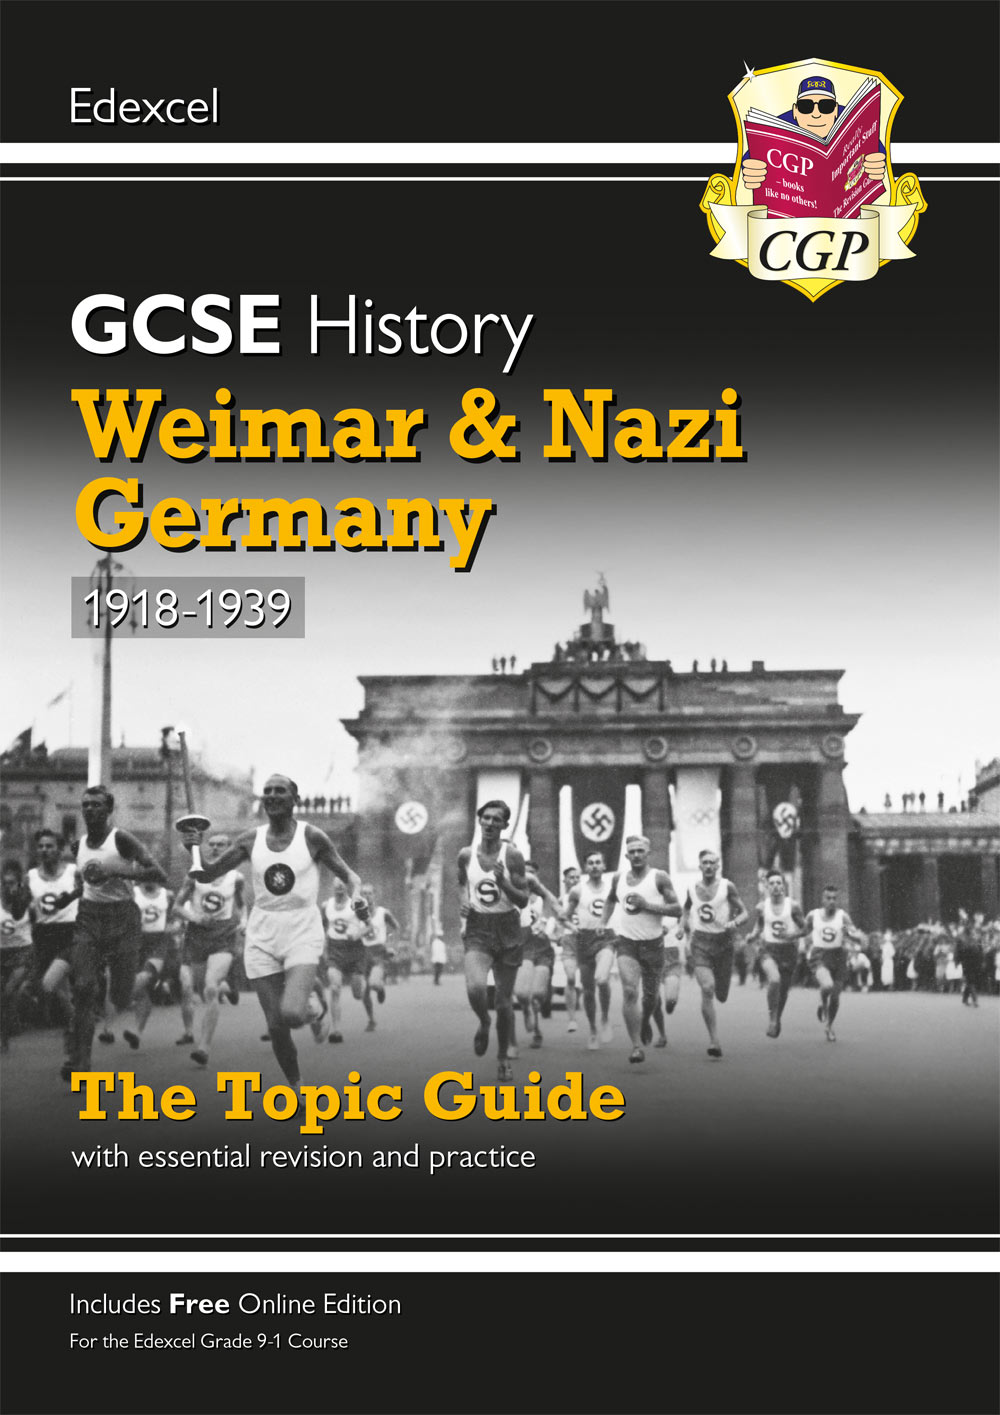 HEWNO41 - New Grade 9-1 GCSE History Edexcel Topic Guide - Weimar and Nazi Germany, 1918-39